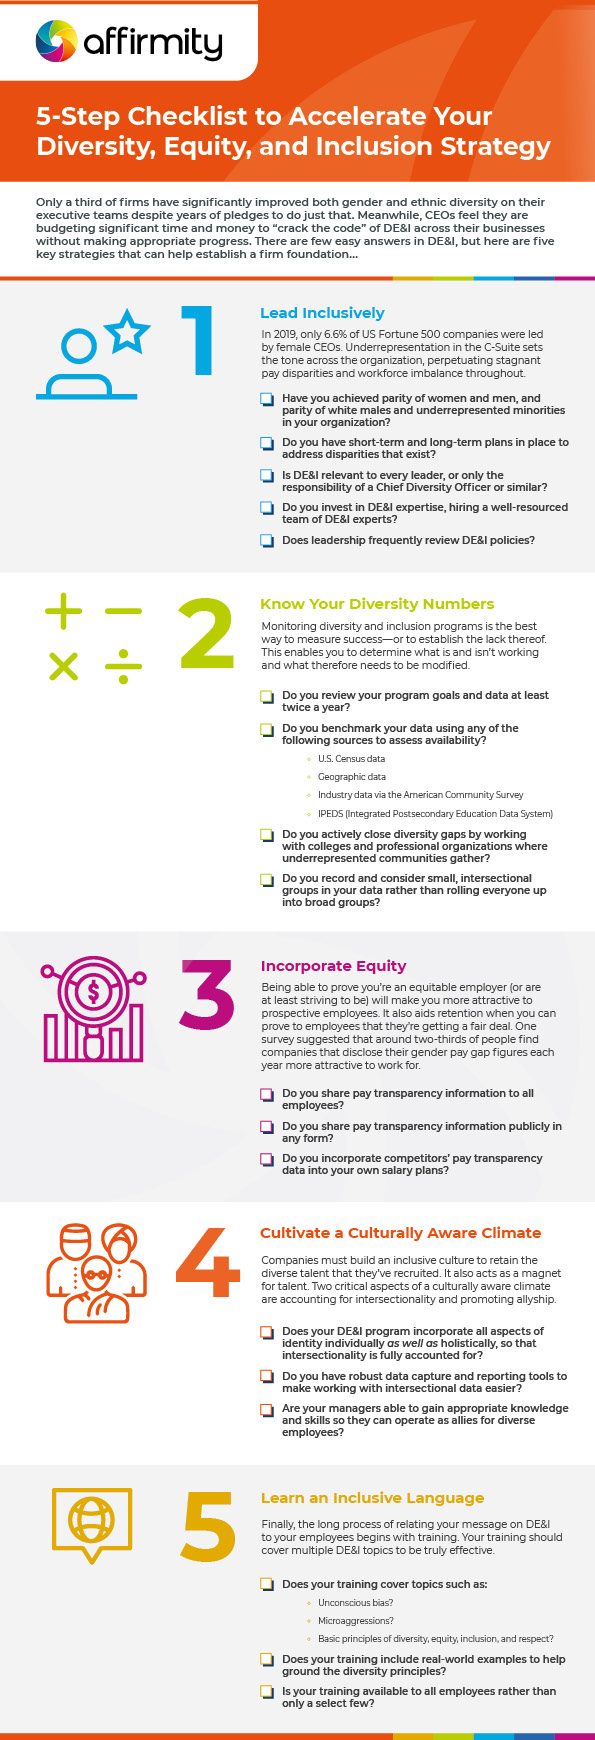 5-Step Checklist to Accelerate Your Diversity, Equity, and Inclusion Strategy full infographic